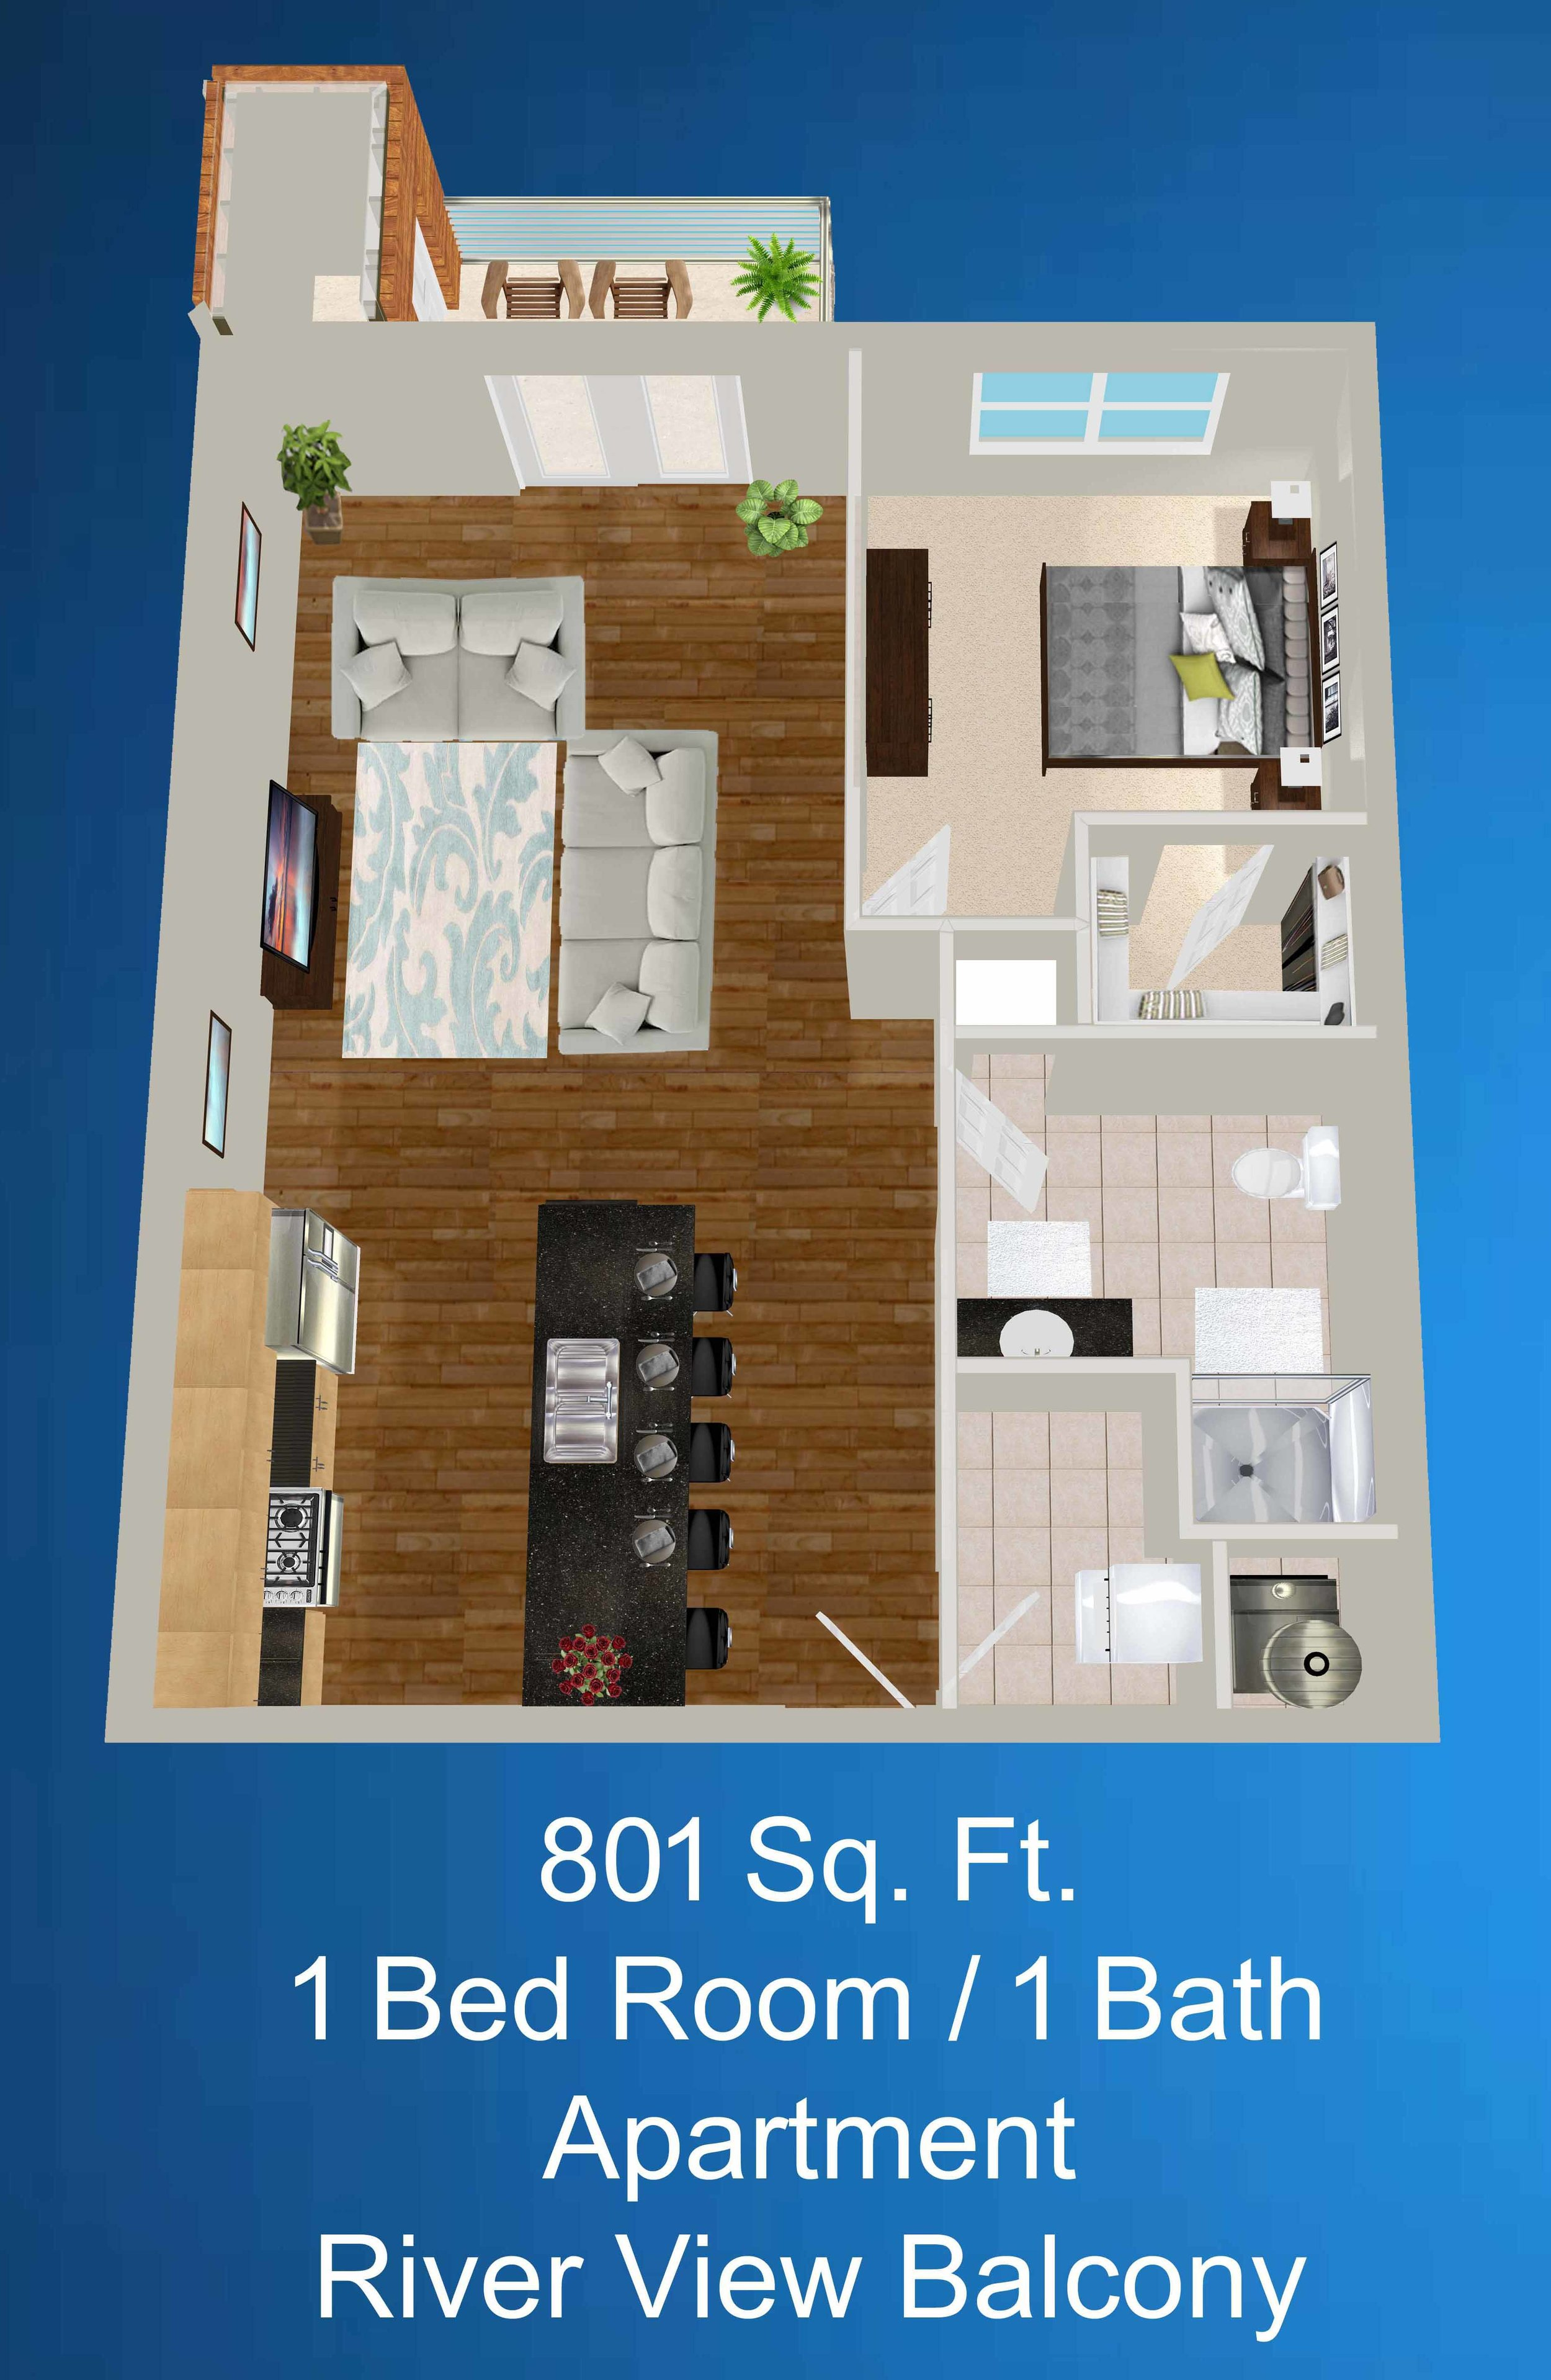 waterfront apartments 1 br 801.jpg